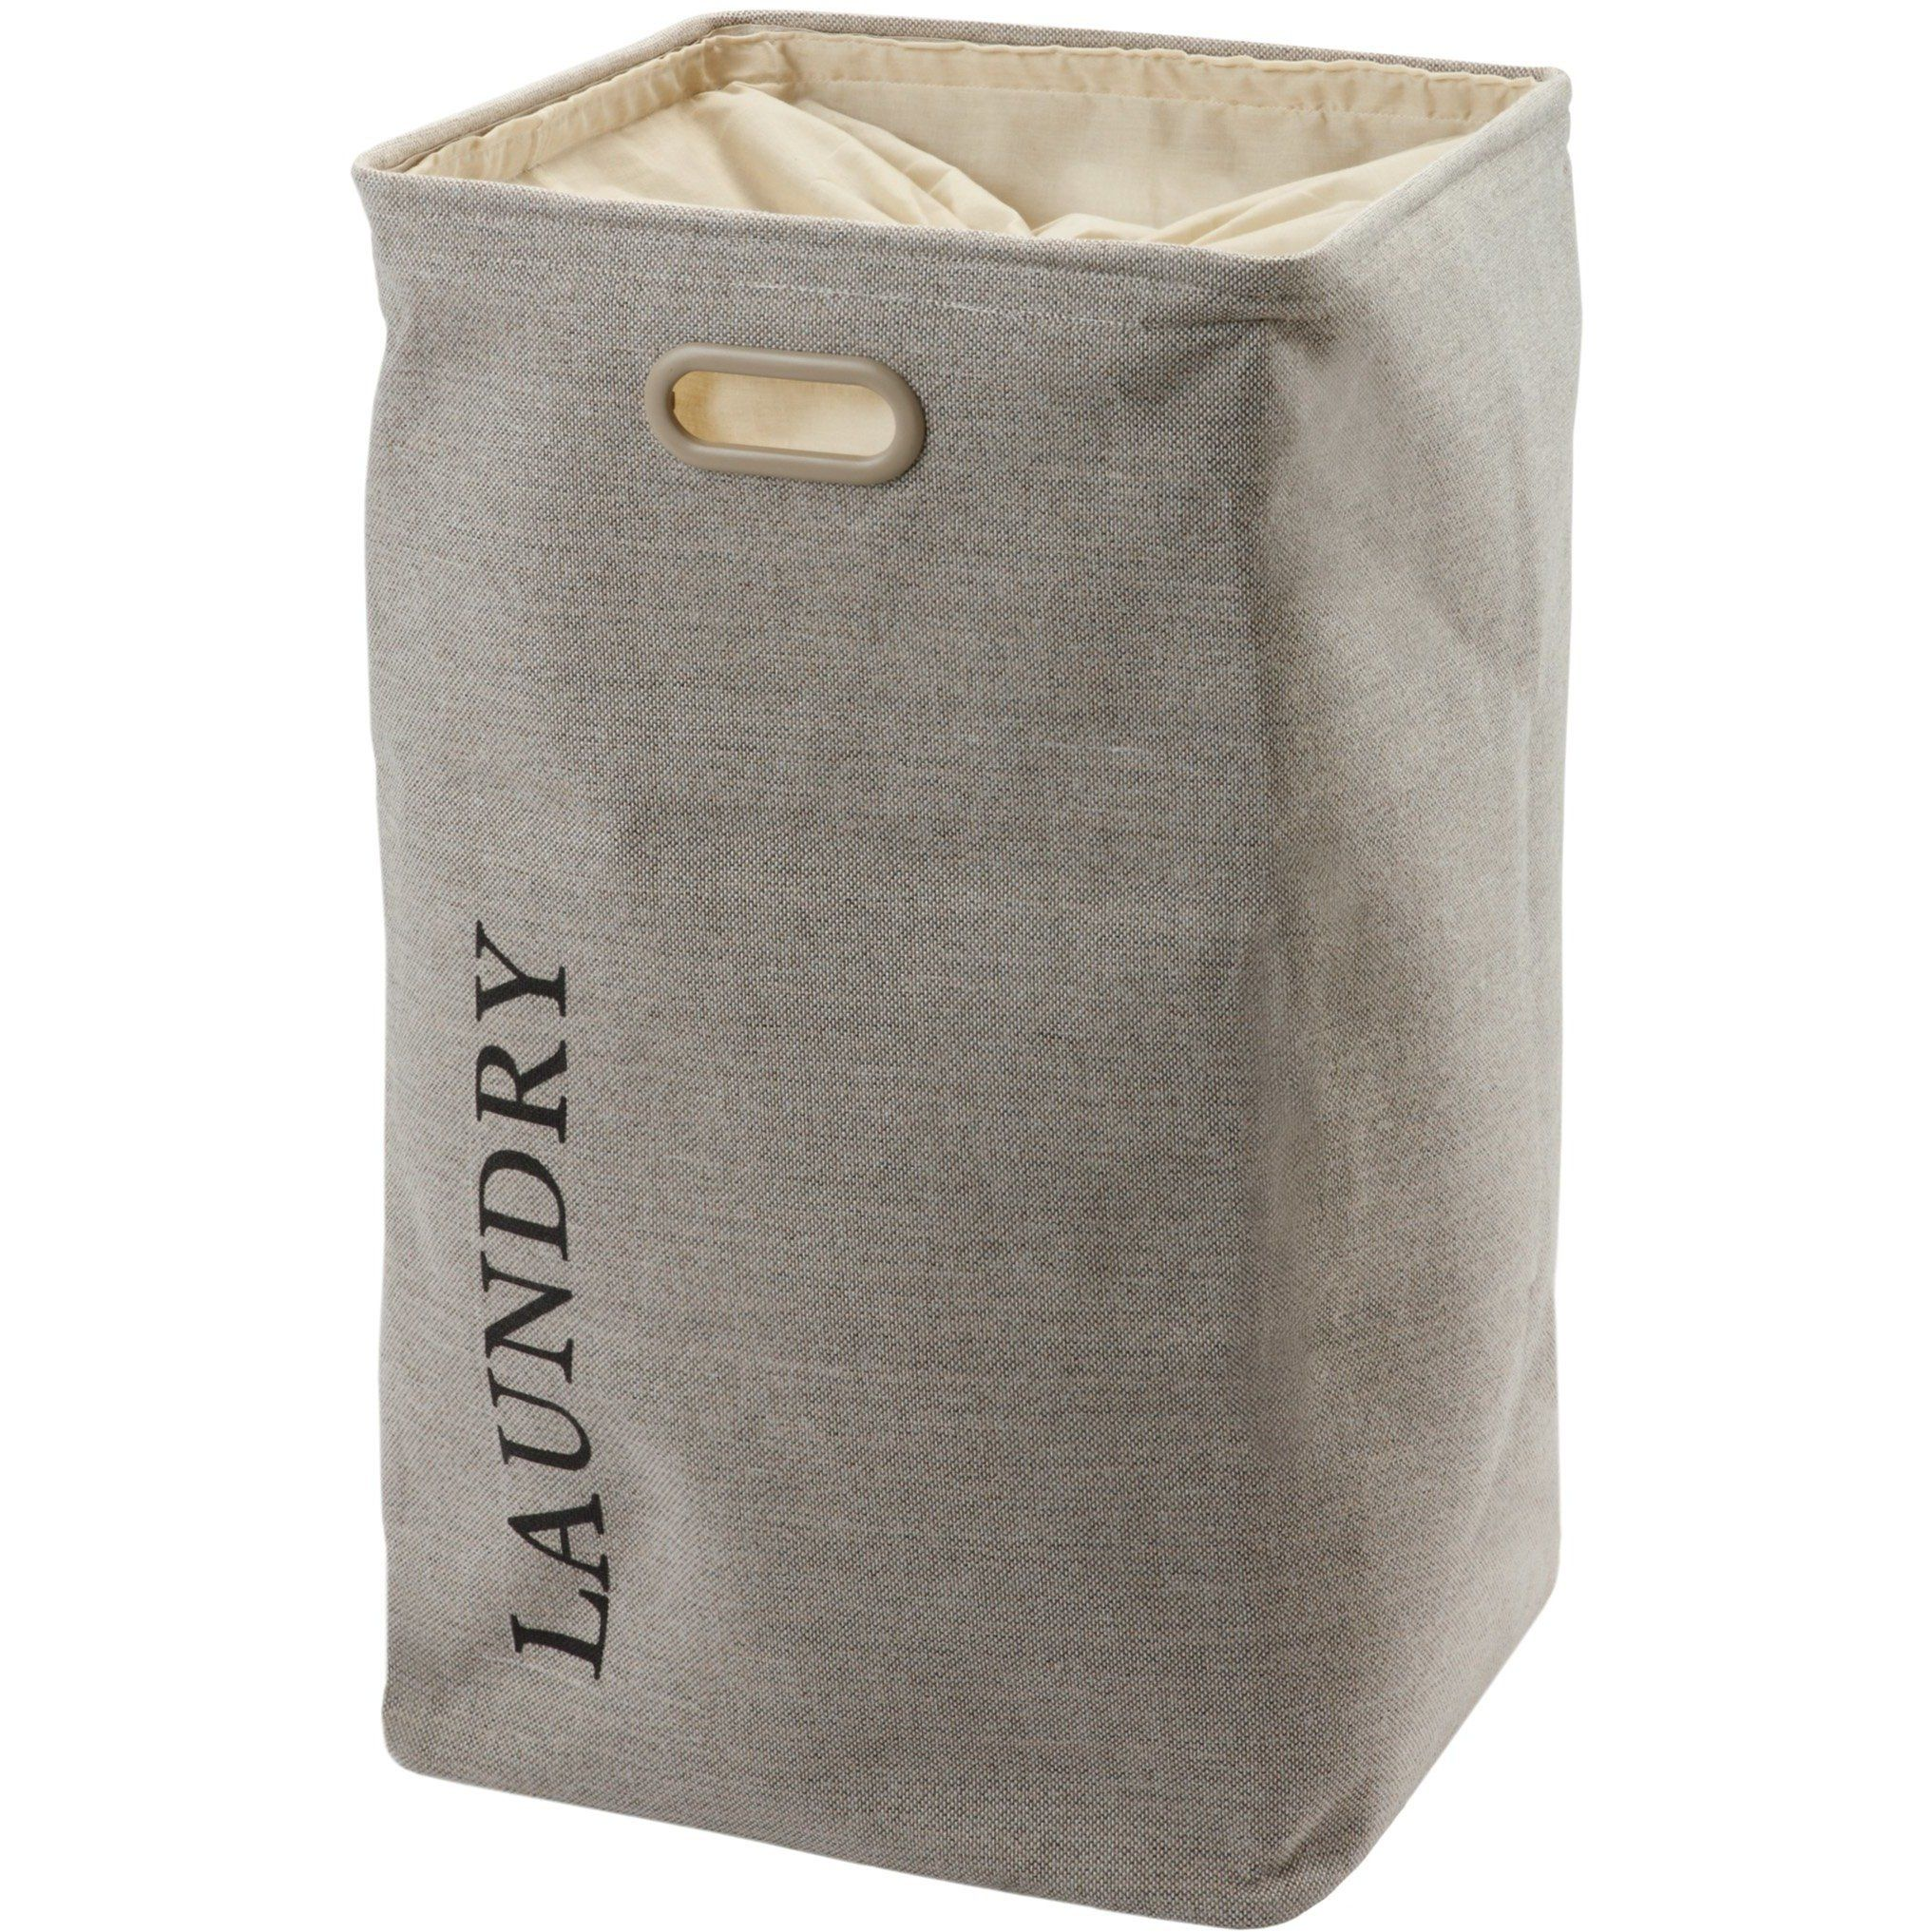 Evora Hamper Laundry Basket With Carry Handles And Removable